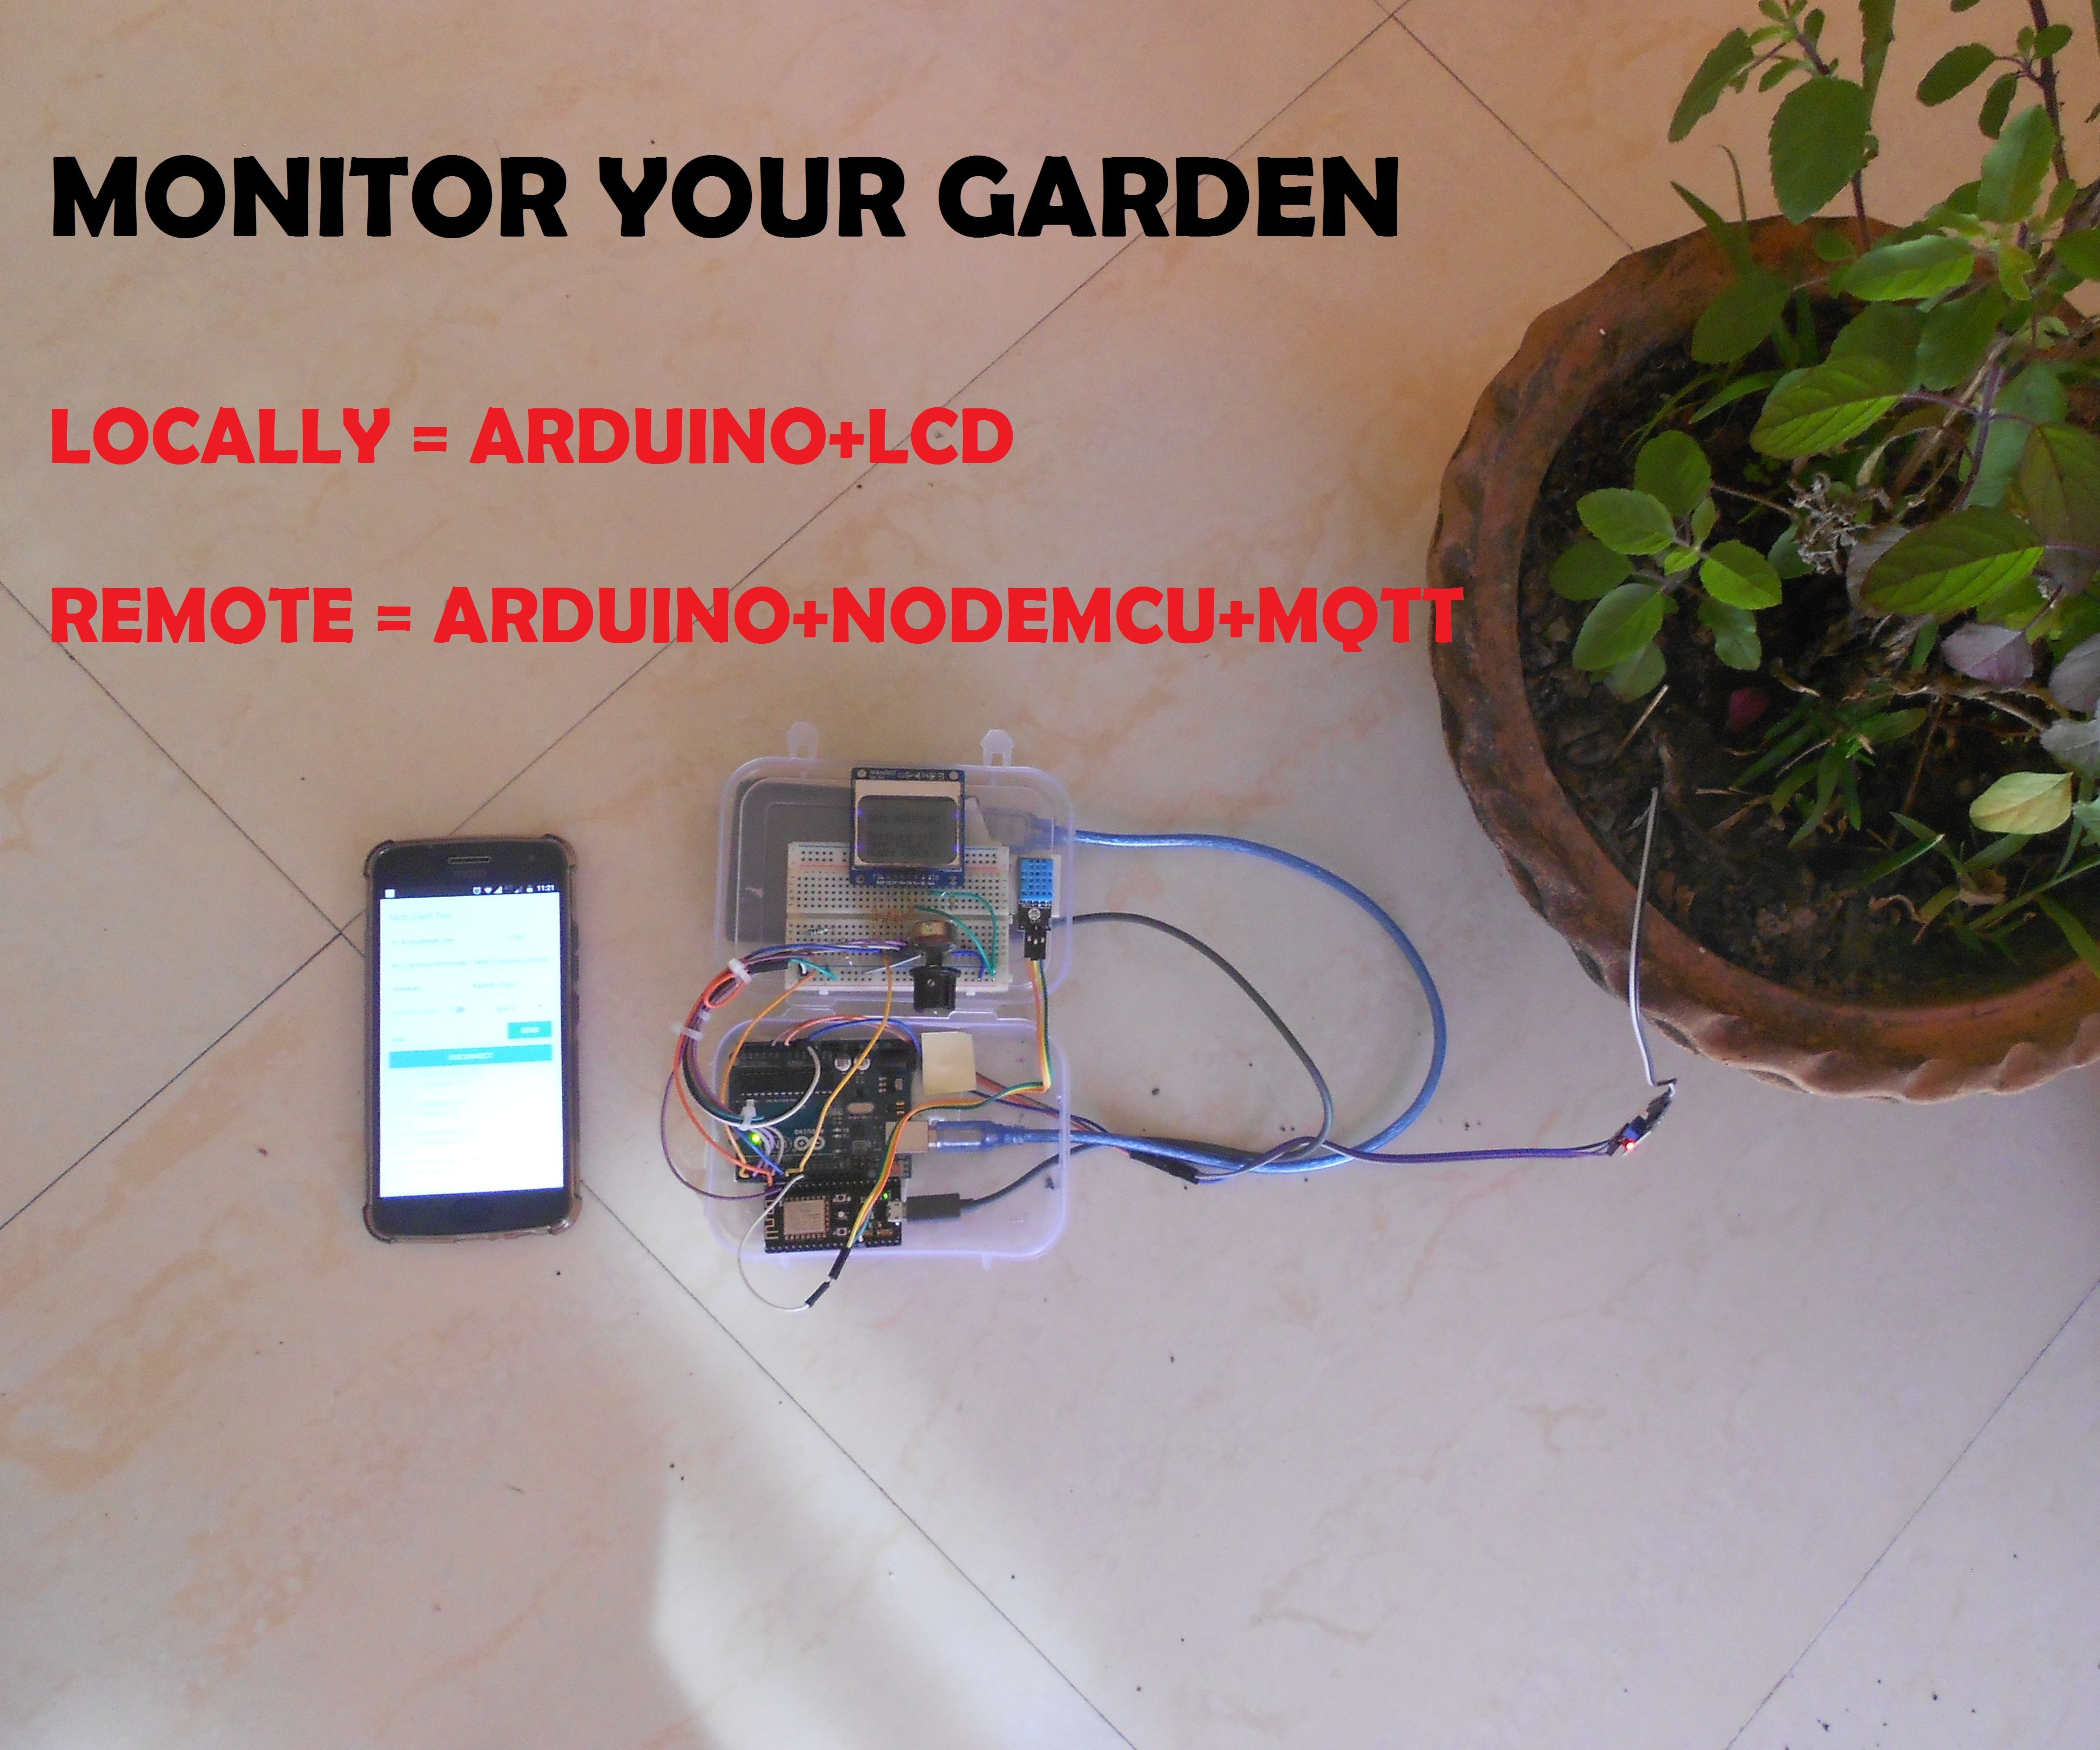 MONITOR YOUR GARDEN: 16 Steps (with Pictures)